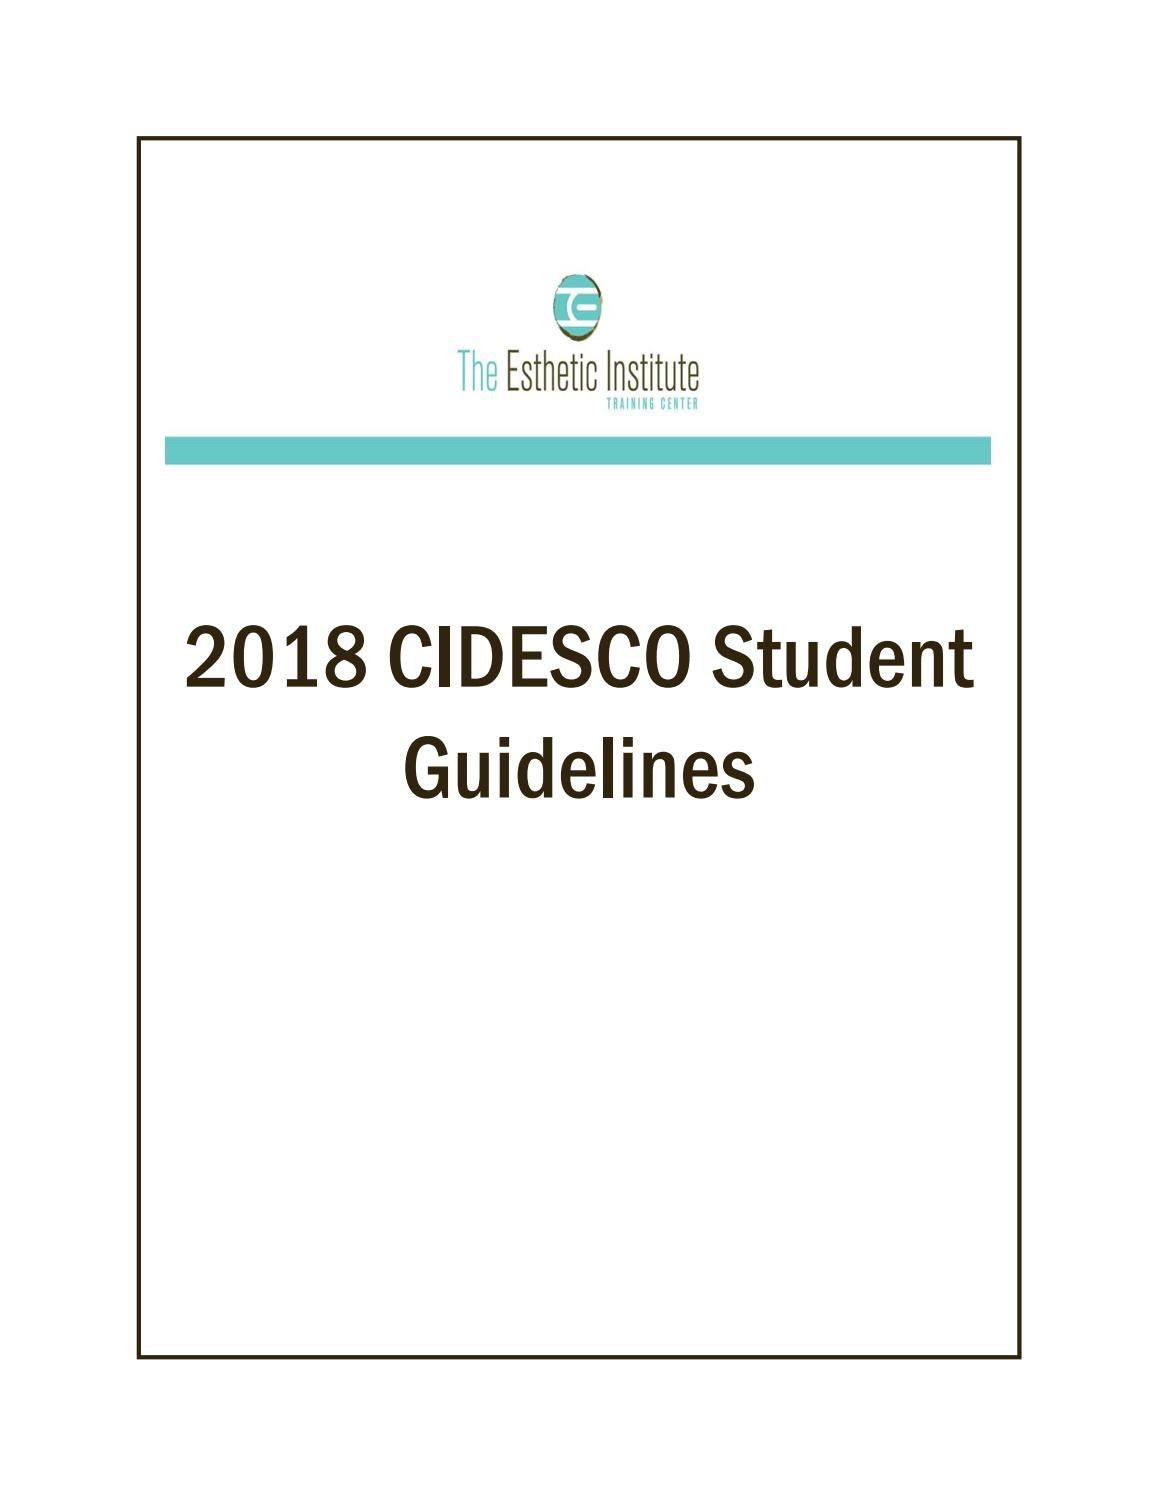 Tei student handbook 2018 by The Esthetic Institute